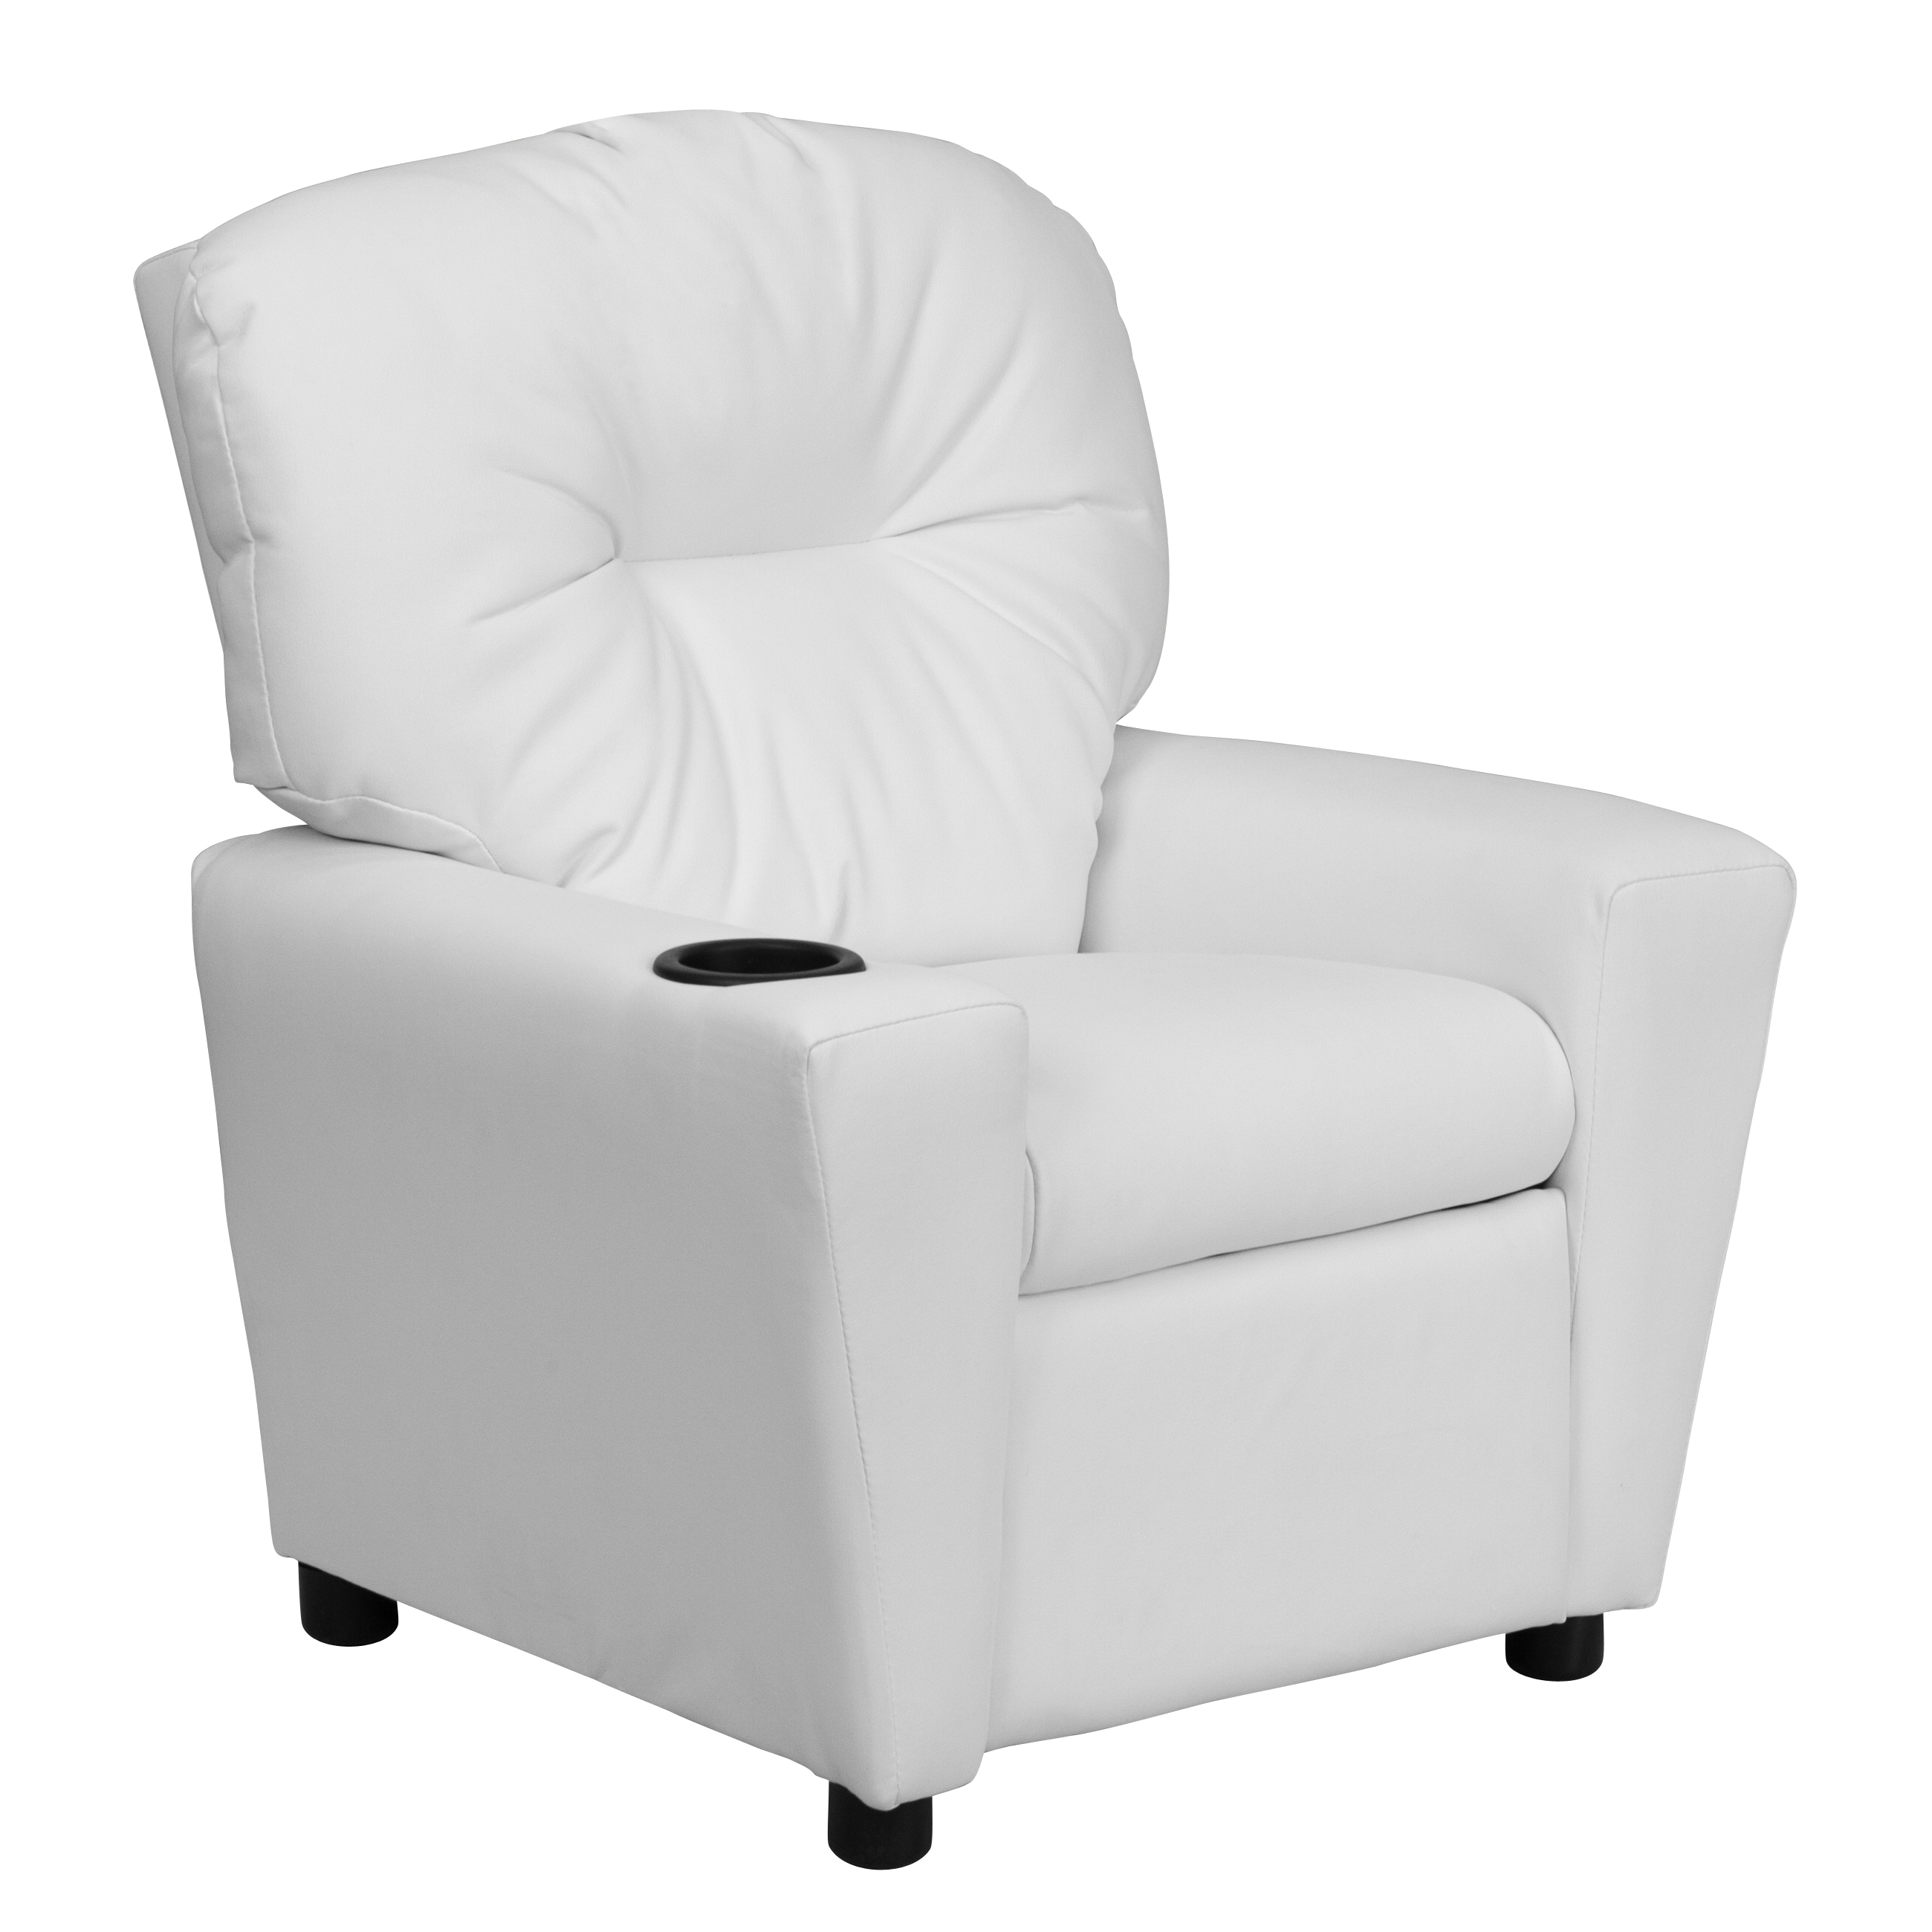 kid recliner chair burke chairs for sale shop flash furniture contemporary white vinyl kids